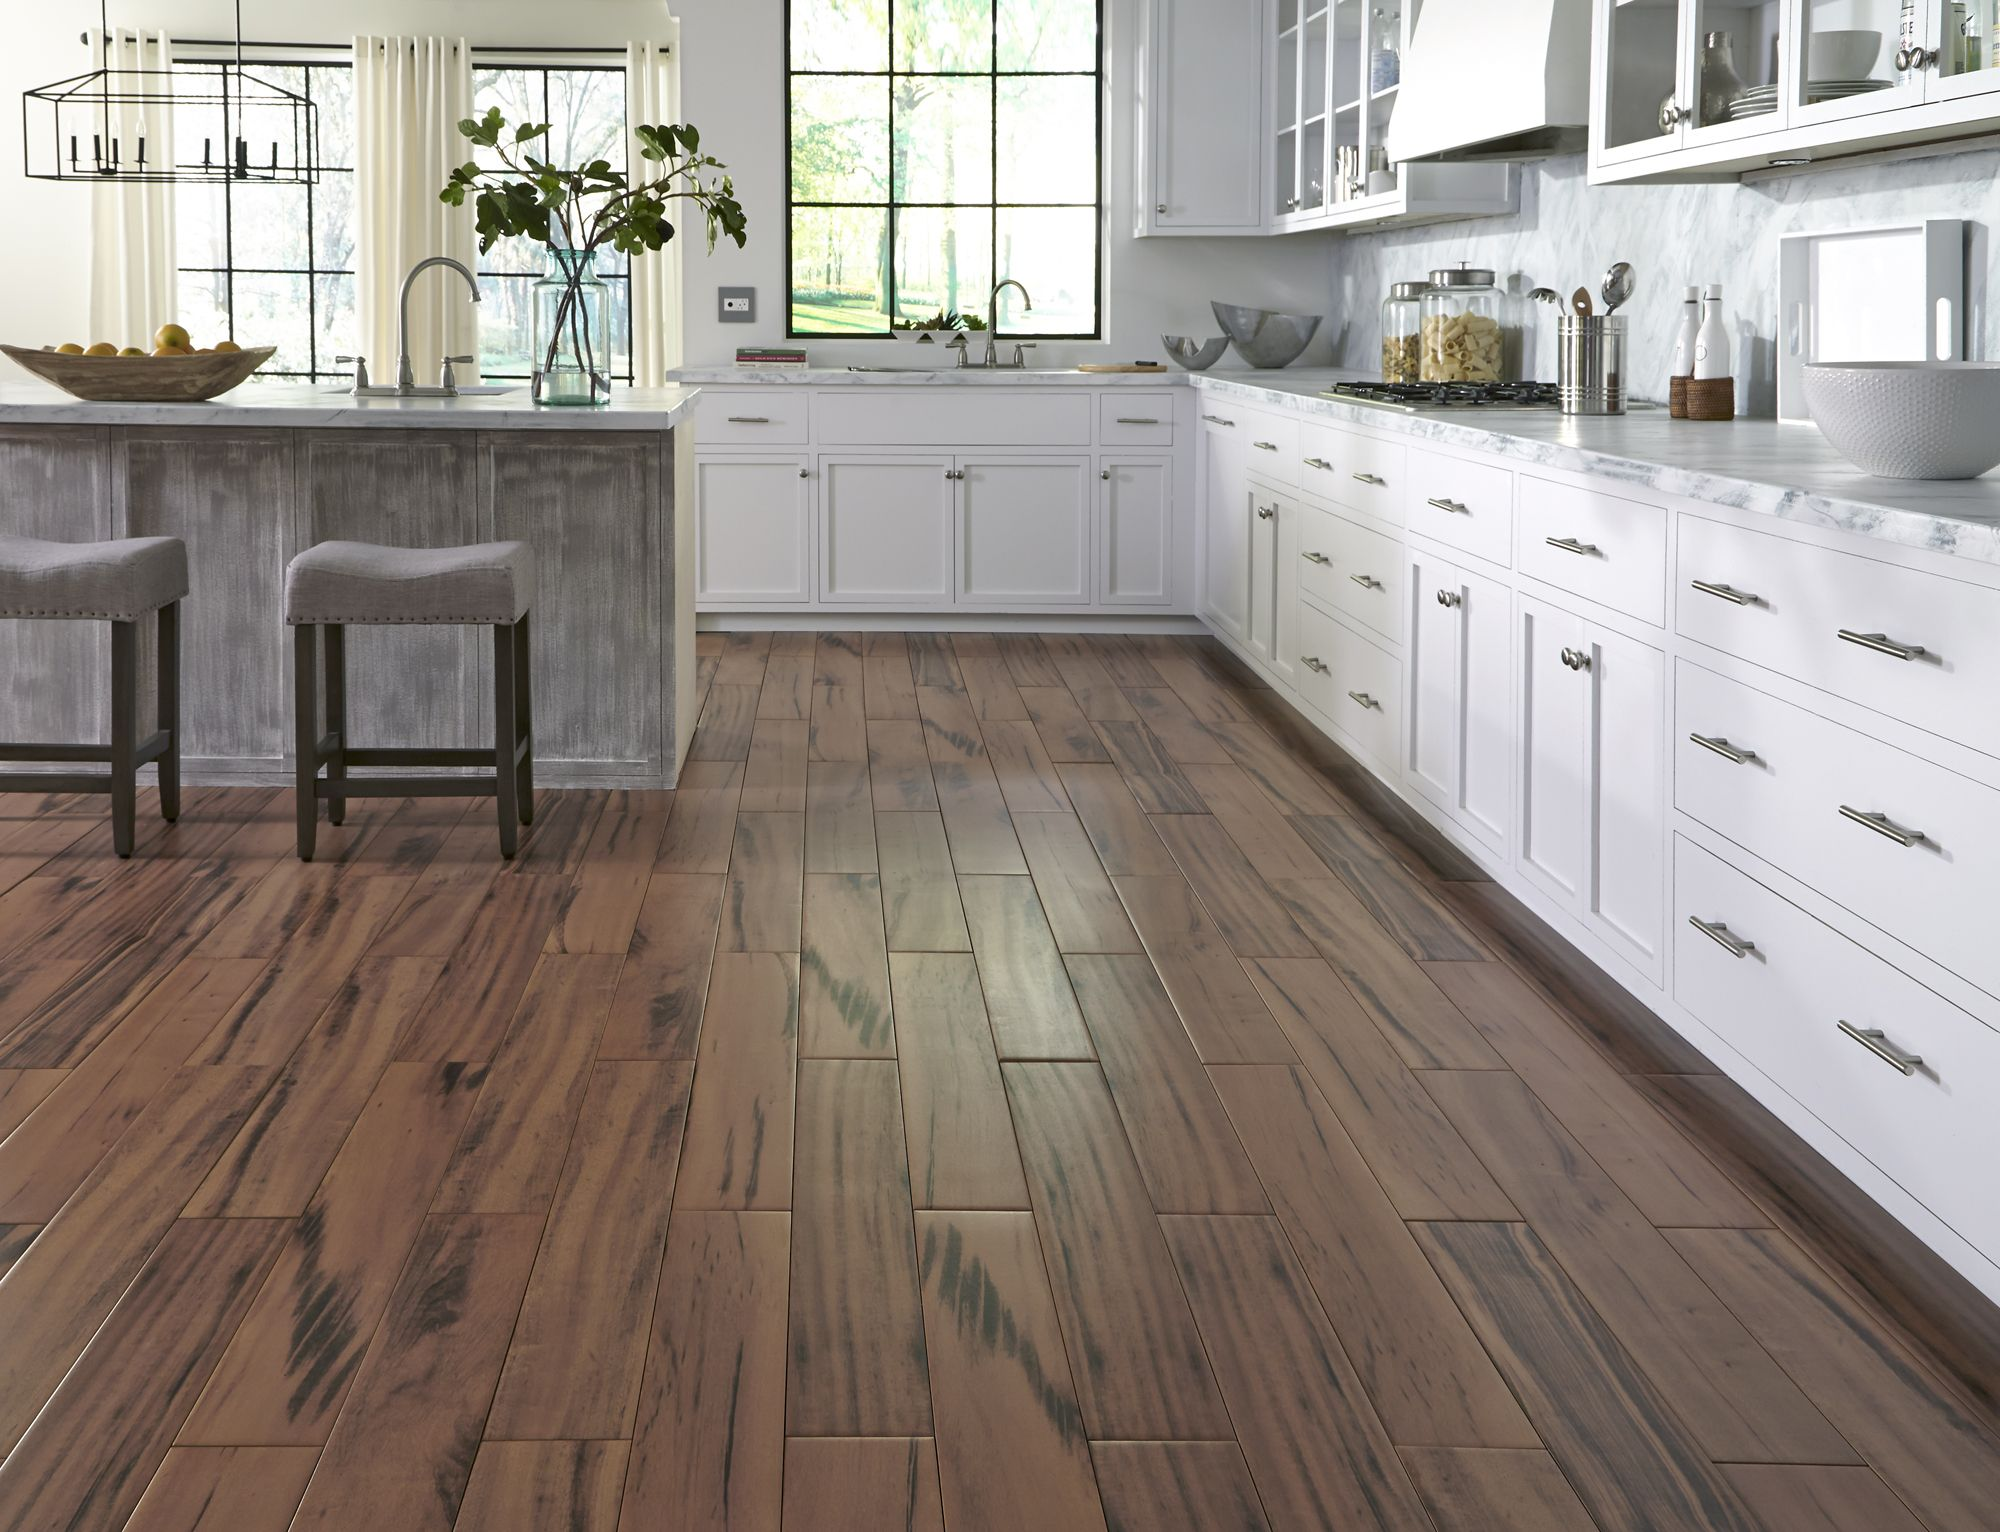 1000+ images about Floors: Wood-Look ile on Pinterest - ^